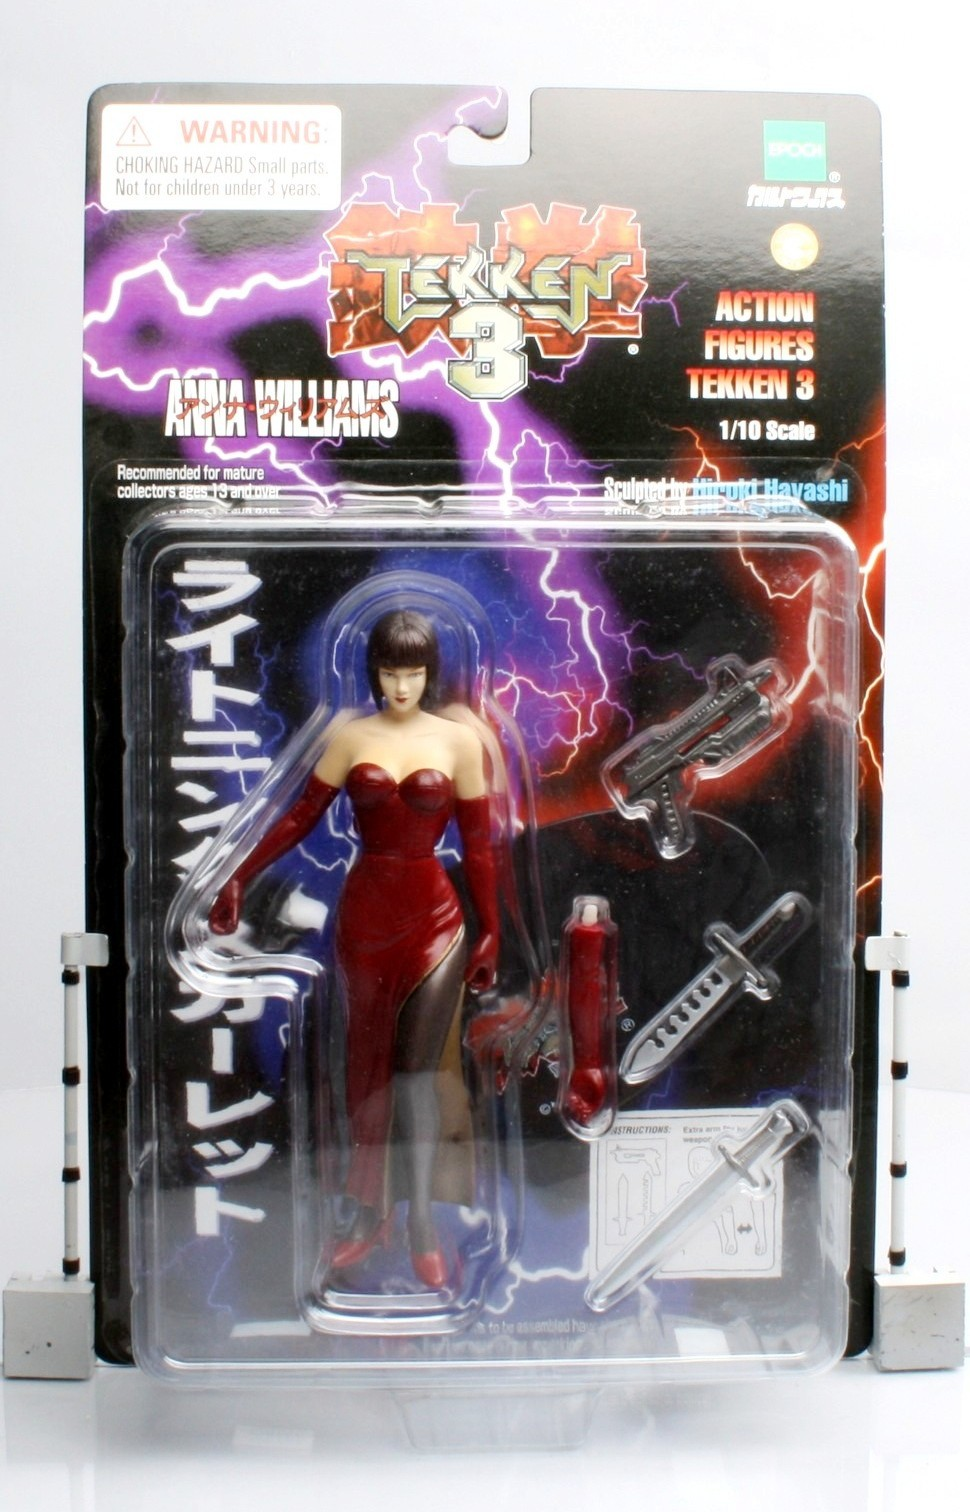 Anna Williams Lighting Scarlet 1 10th Scale Figure Tekken 3 Video Game Super Stars Release 08 Action Figure Epock Collectors Edition Series Rare Vintage 1998 Now And Then Collectibles